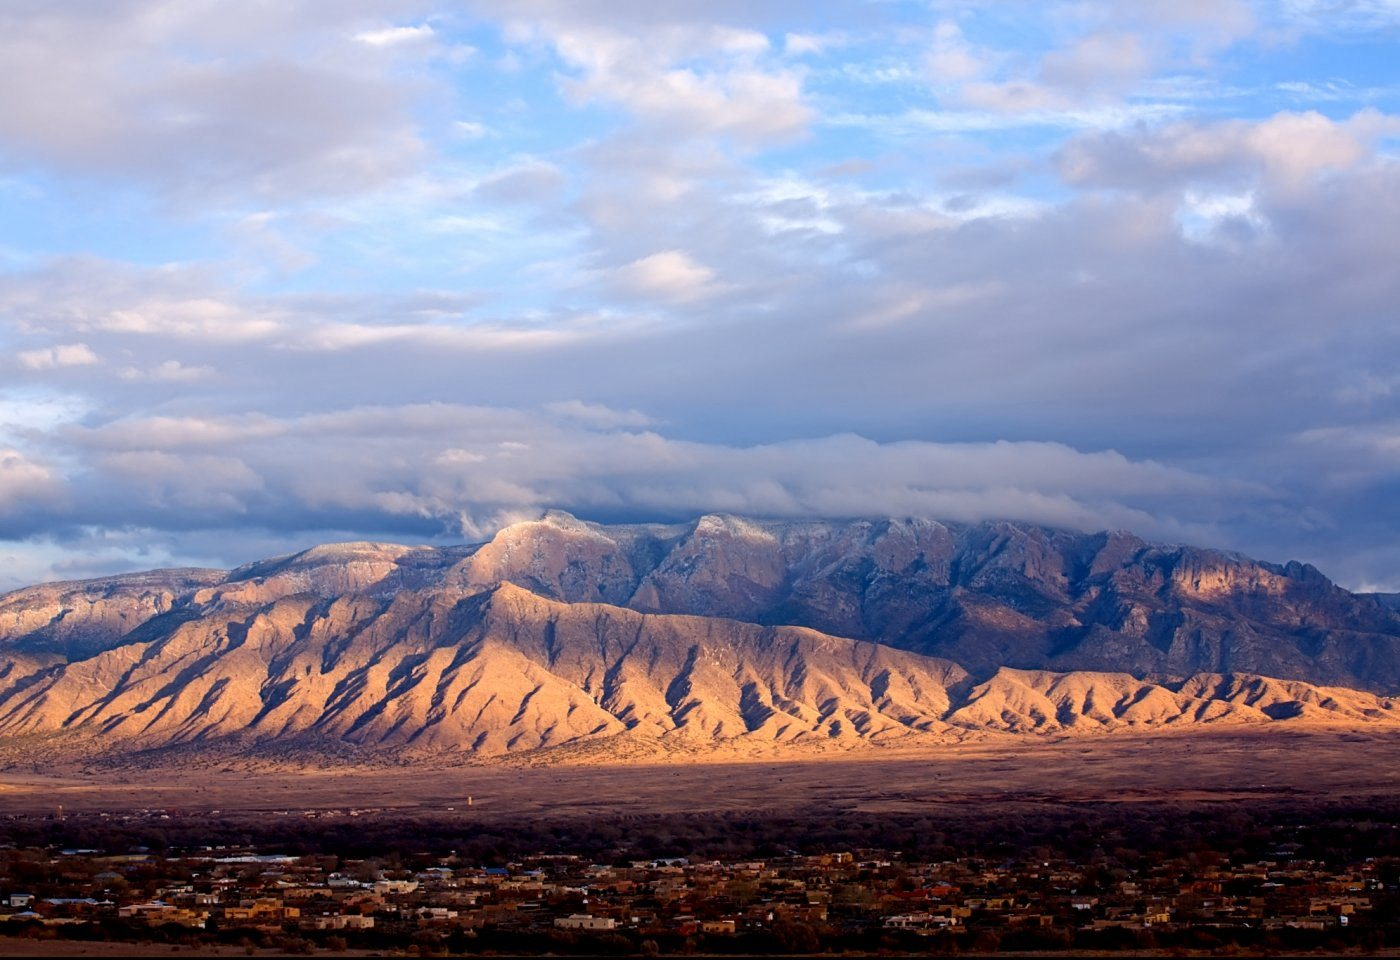 View of mountains and sky Whispering Sands Apartments in Albuquerque NM Rentals at 87123